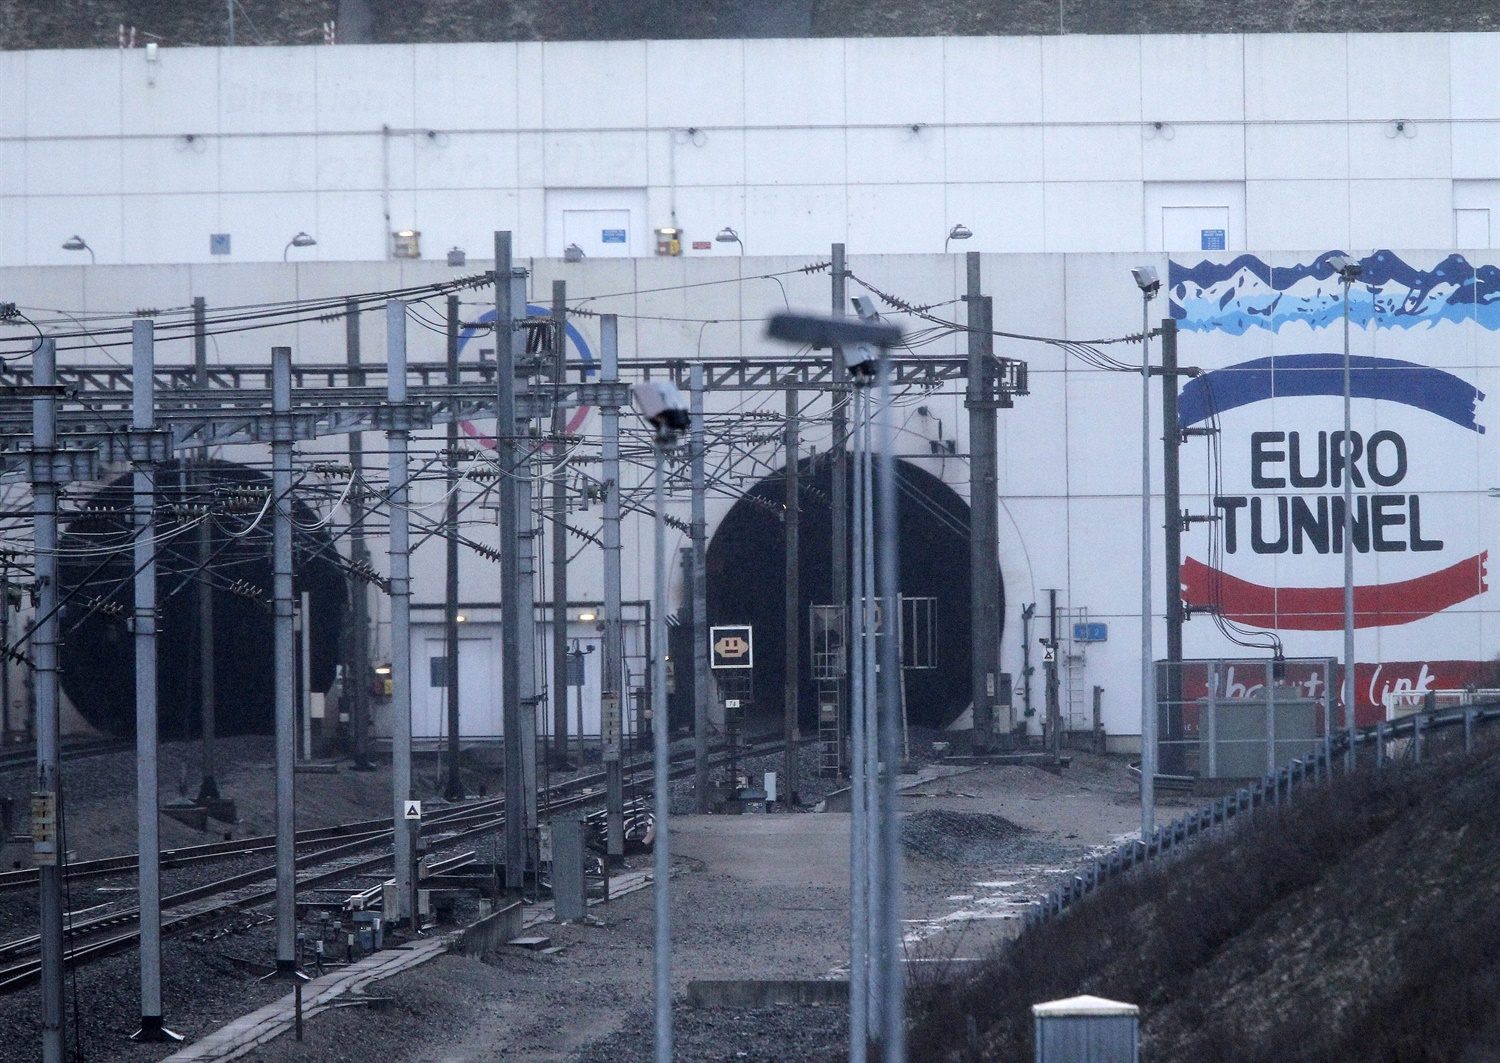 Redesign calls for Channel Tunnel's open shuttle trains after latest fire